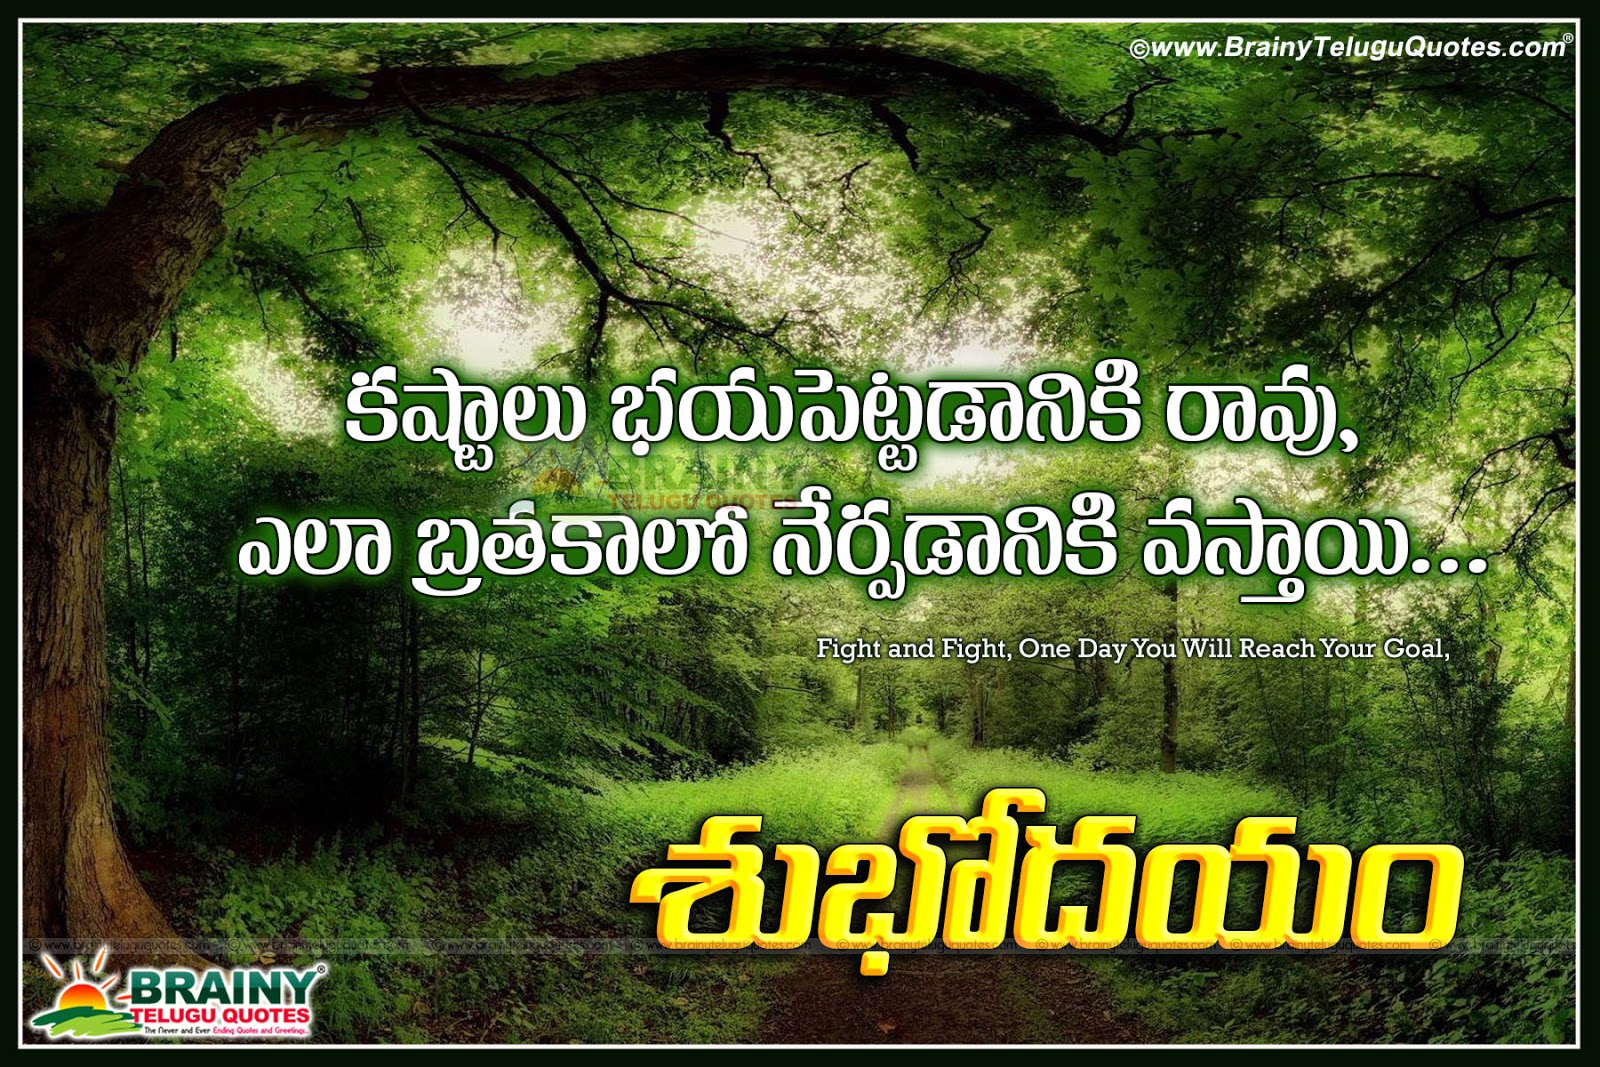 beautiful nature telugu good morning and wishes quotes